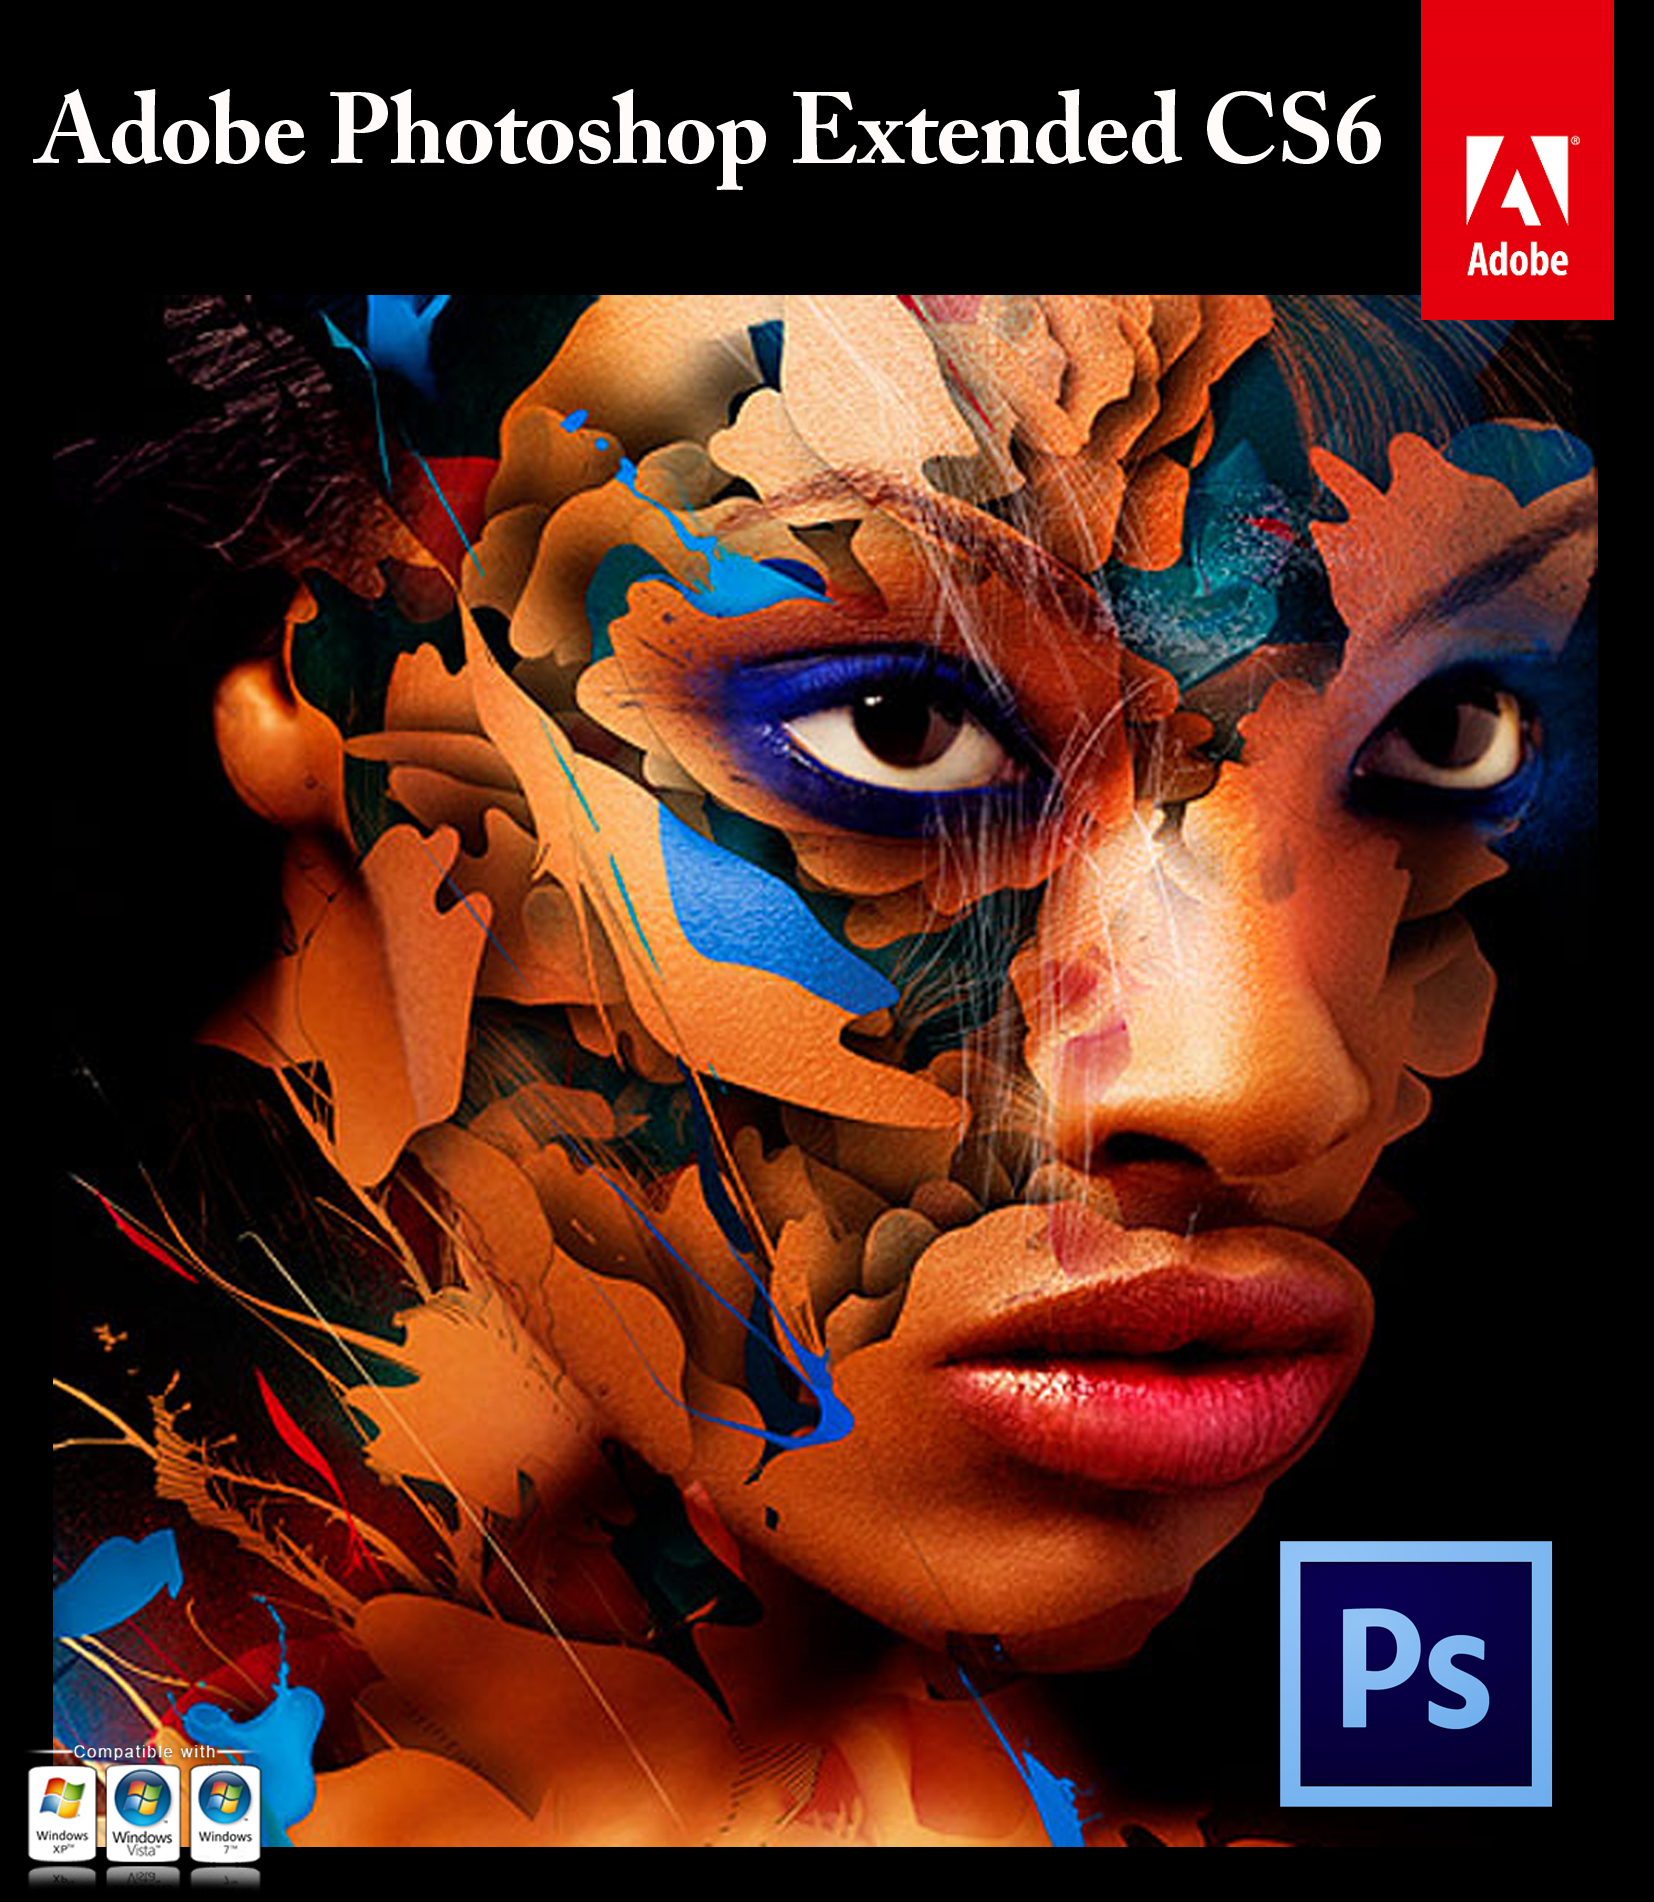 Genuine Adobe Photoshop CS6 Extended Online Key Sale 70% Discounts